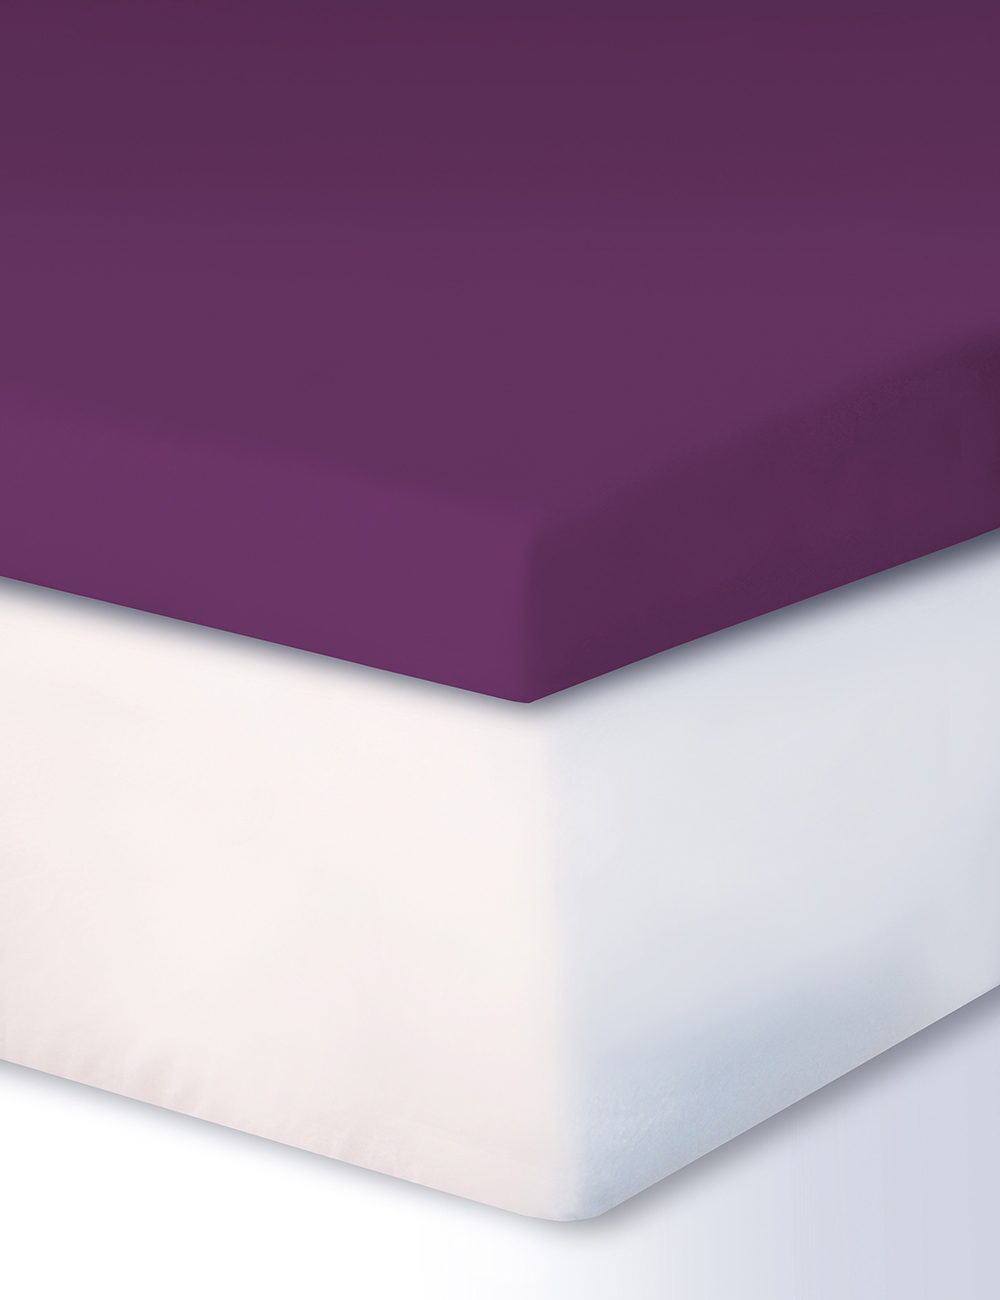 fixleintuch f r boxspring topper 140 160 x 200 cm violett. Black Bedroom Furniture Sets. Home Design Ideas